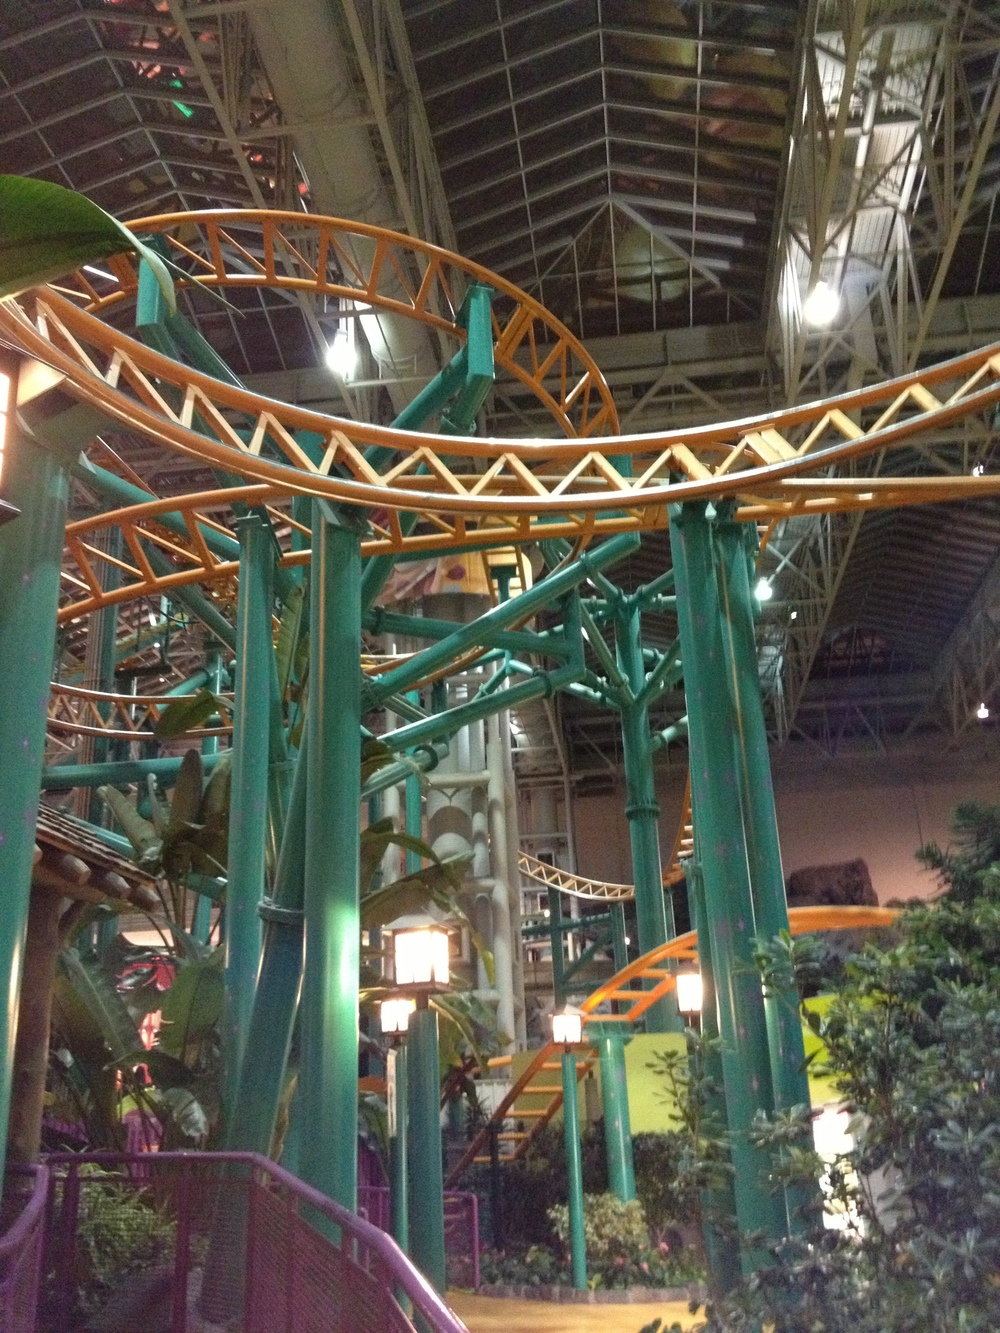 There were a couple of new roller coasters that I really enjoyed... my last visit had been as a 12 year-old.  Luckily they still had the log chute!